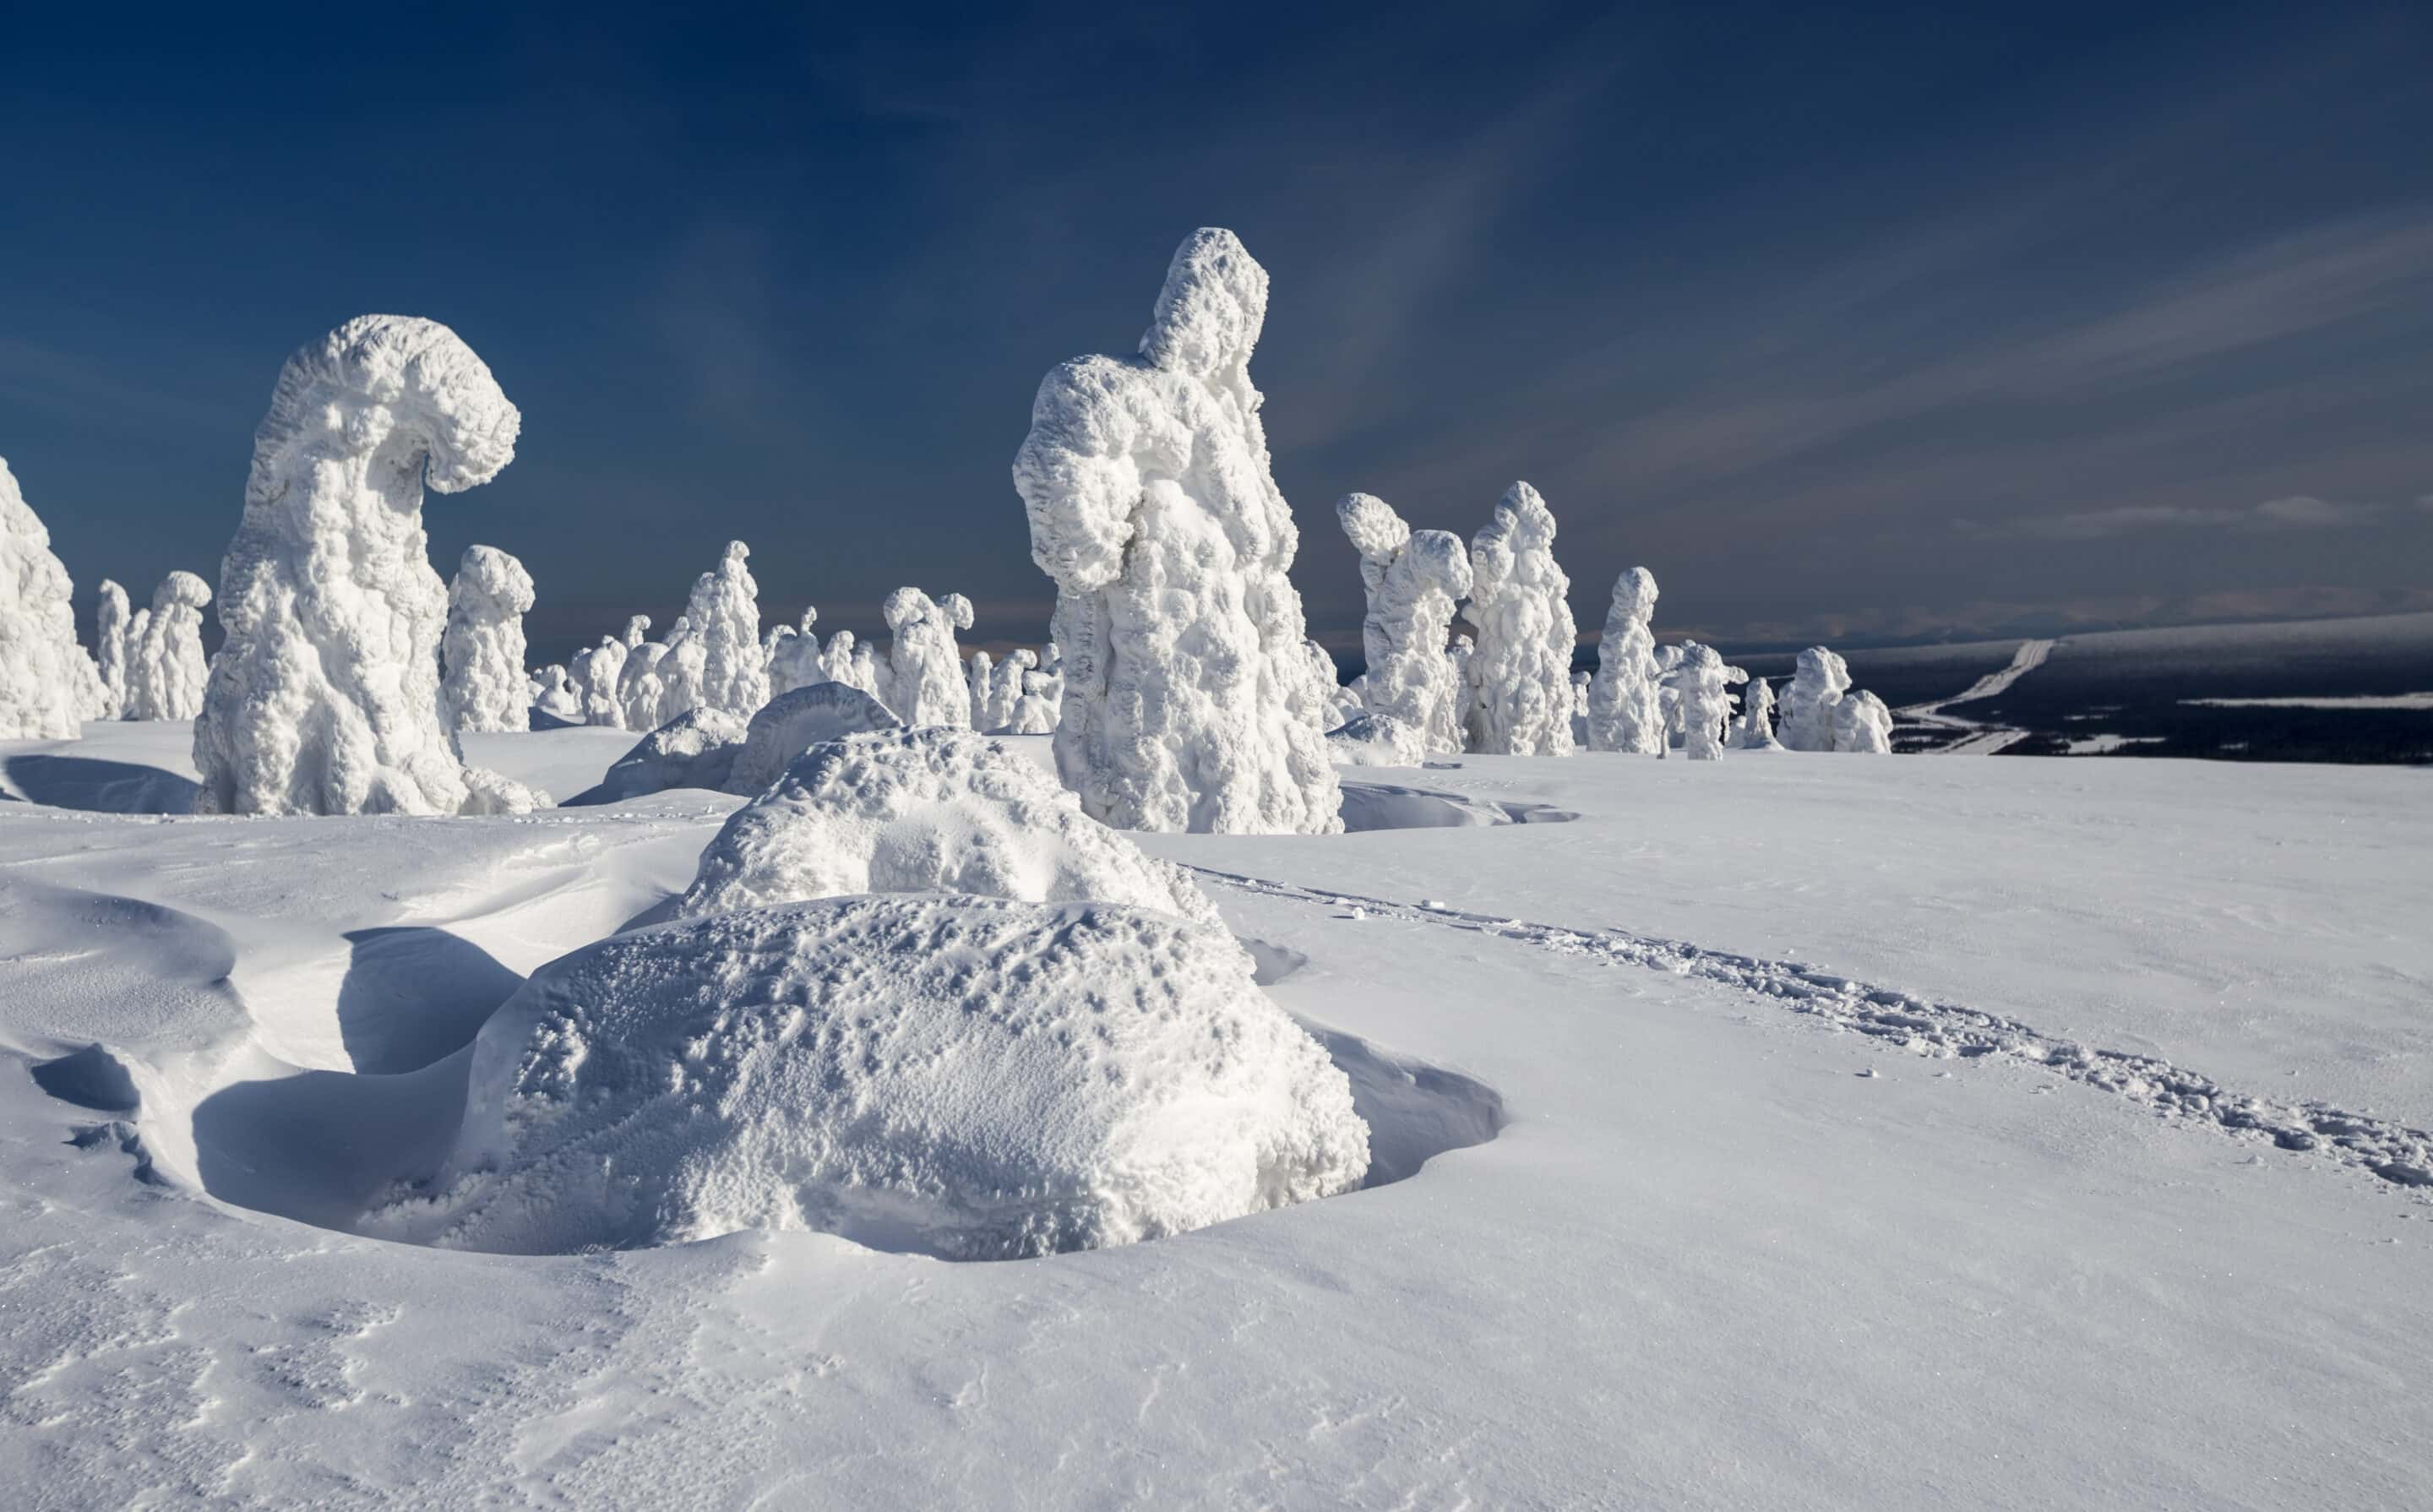 Experience awe-inspiring snow sculptures during Québec City's Winter Carnival. Here you will find life-like sculptures made entirely of snow!